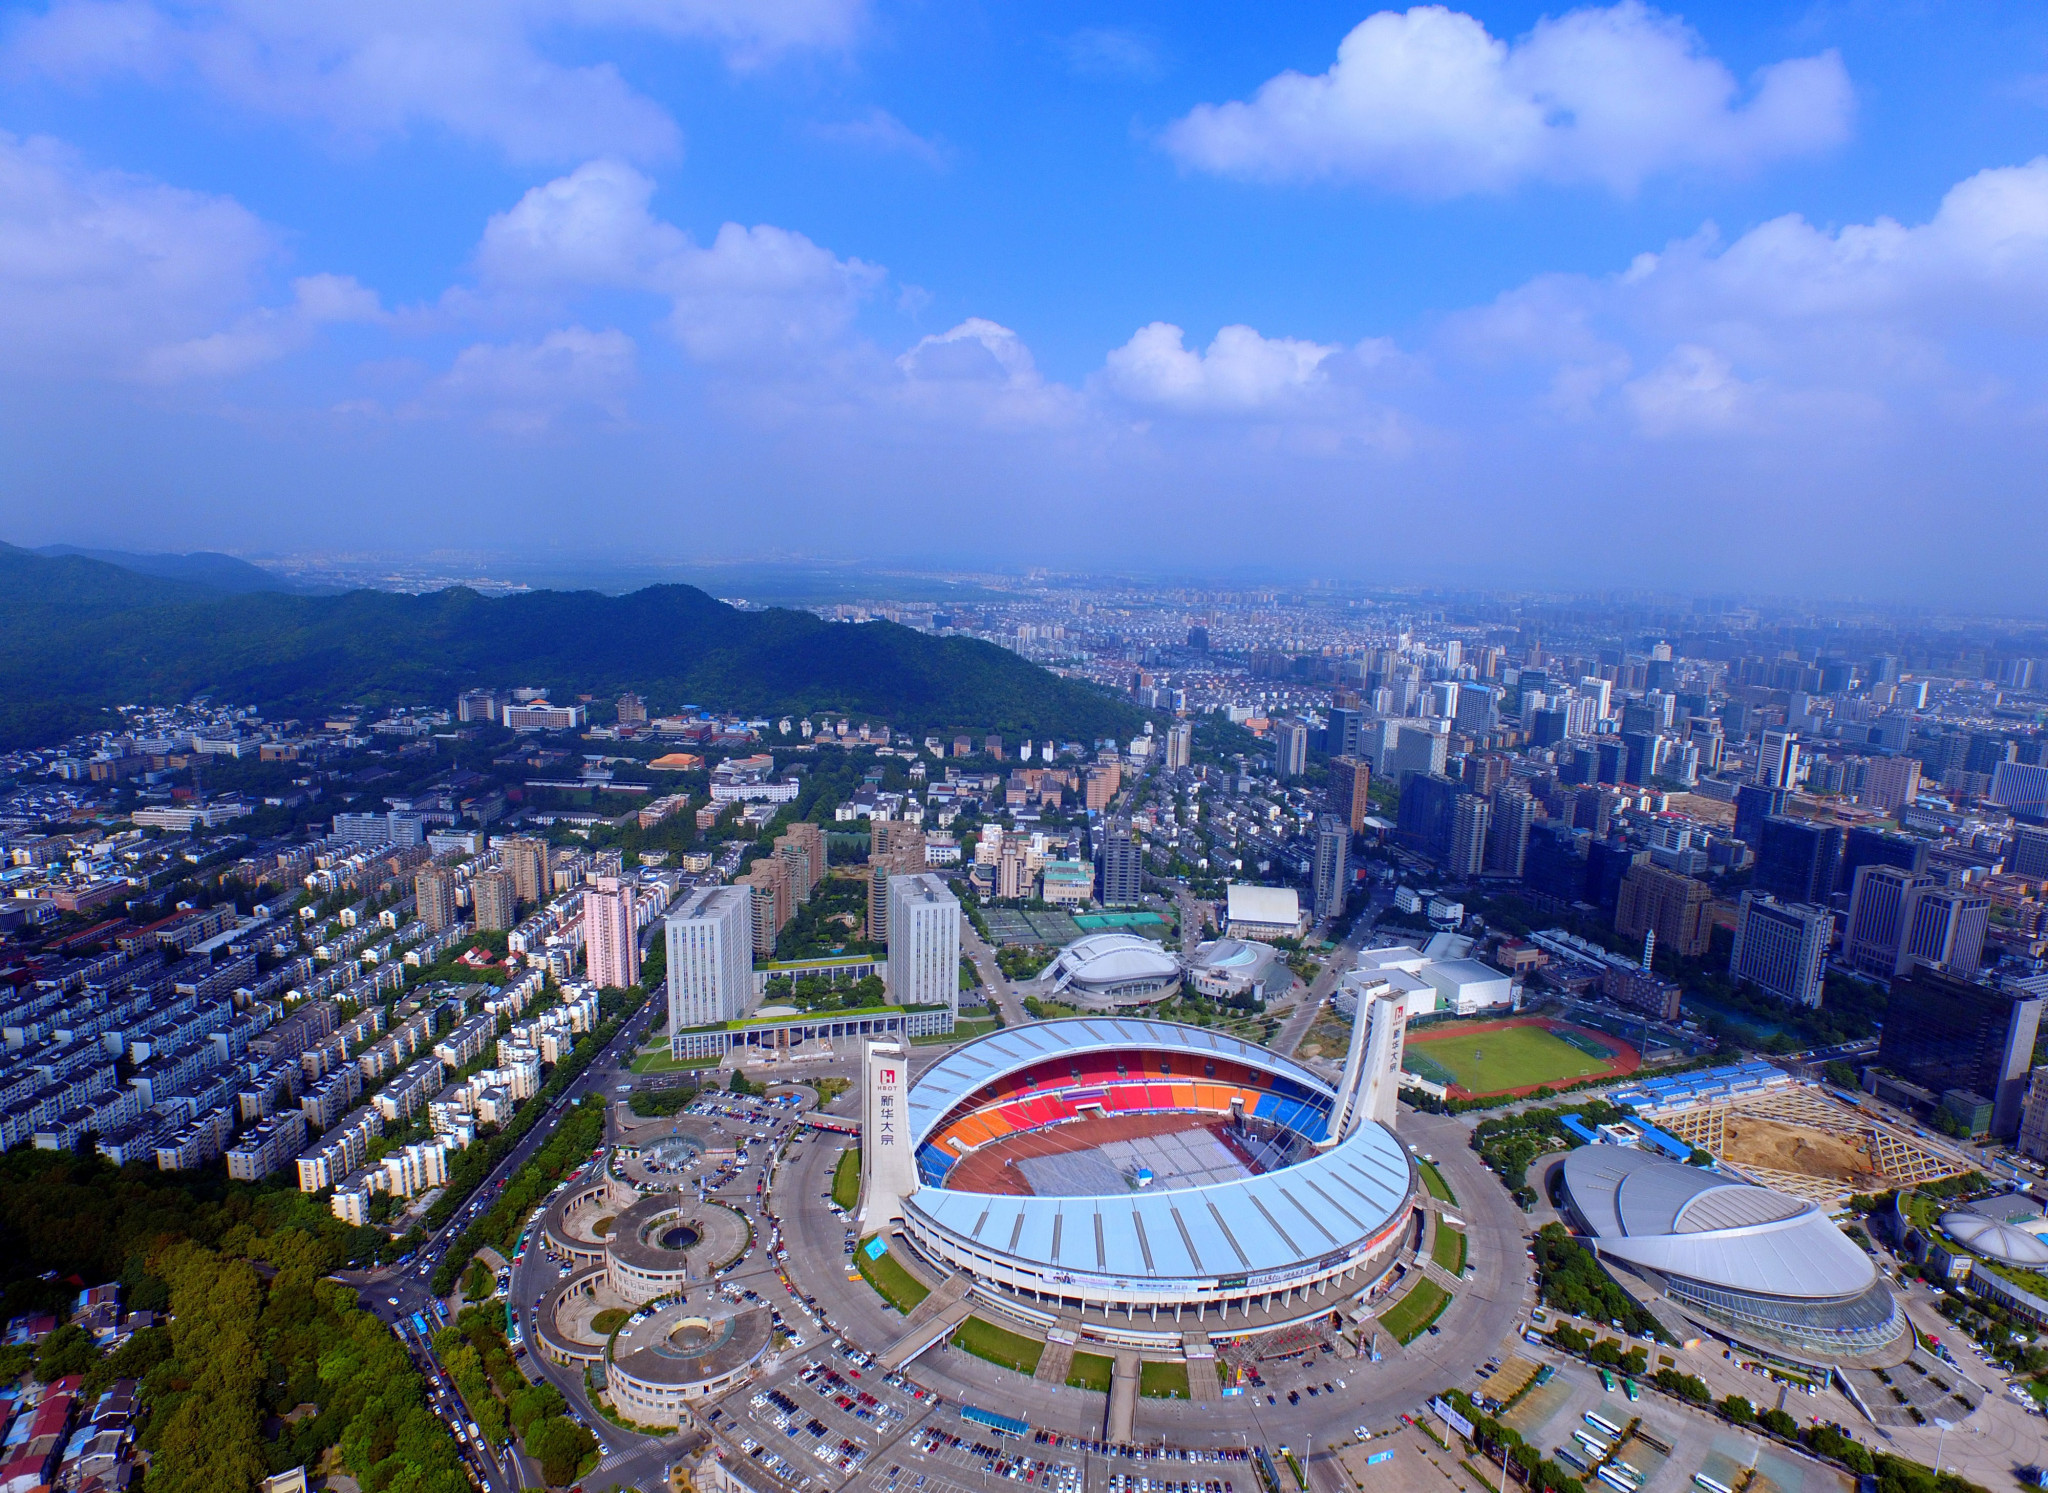 The Chinese city was awarded the hosting rights for the 2022 Asian Games in September 2015 ©Getty Images